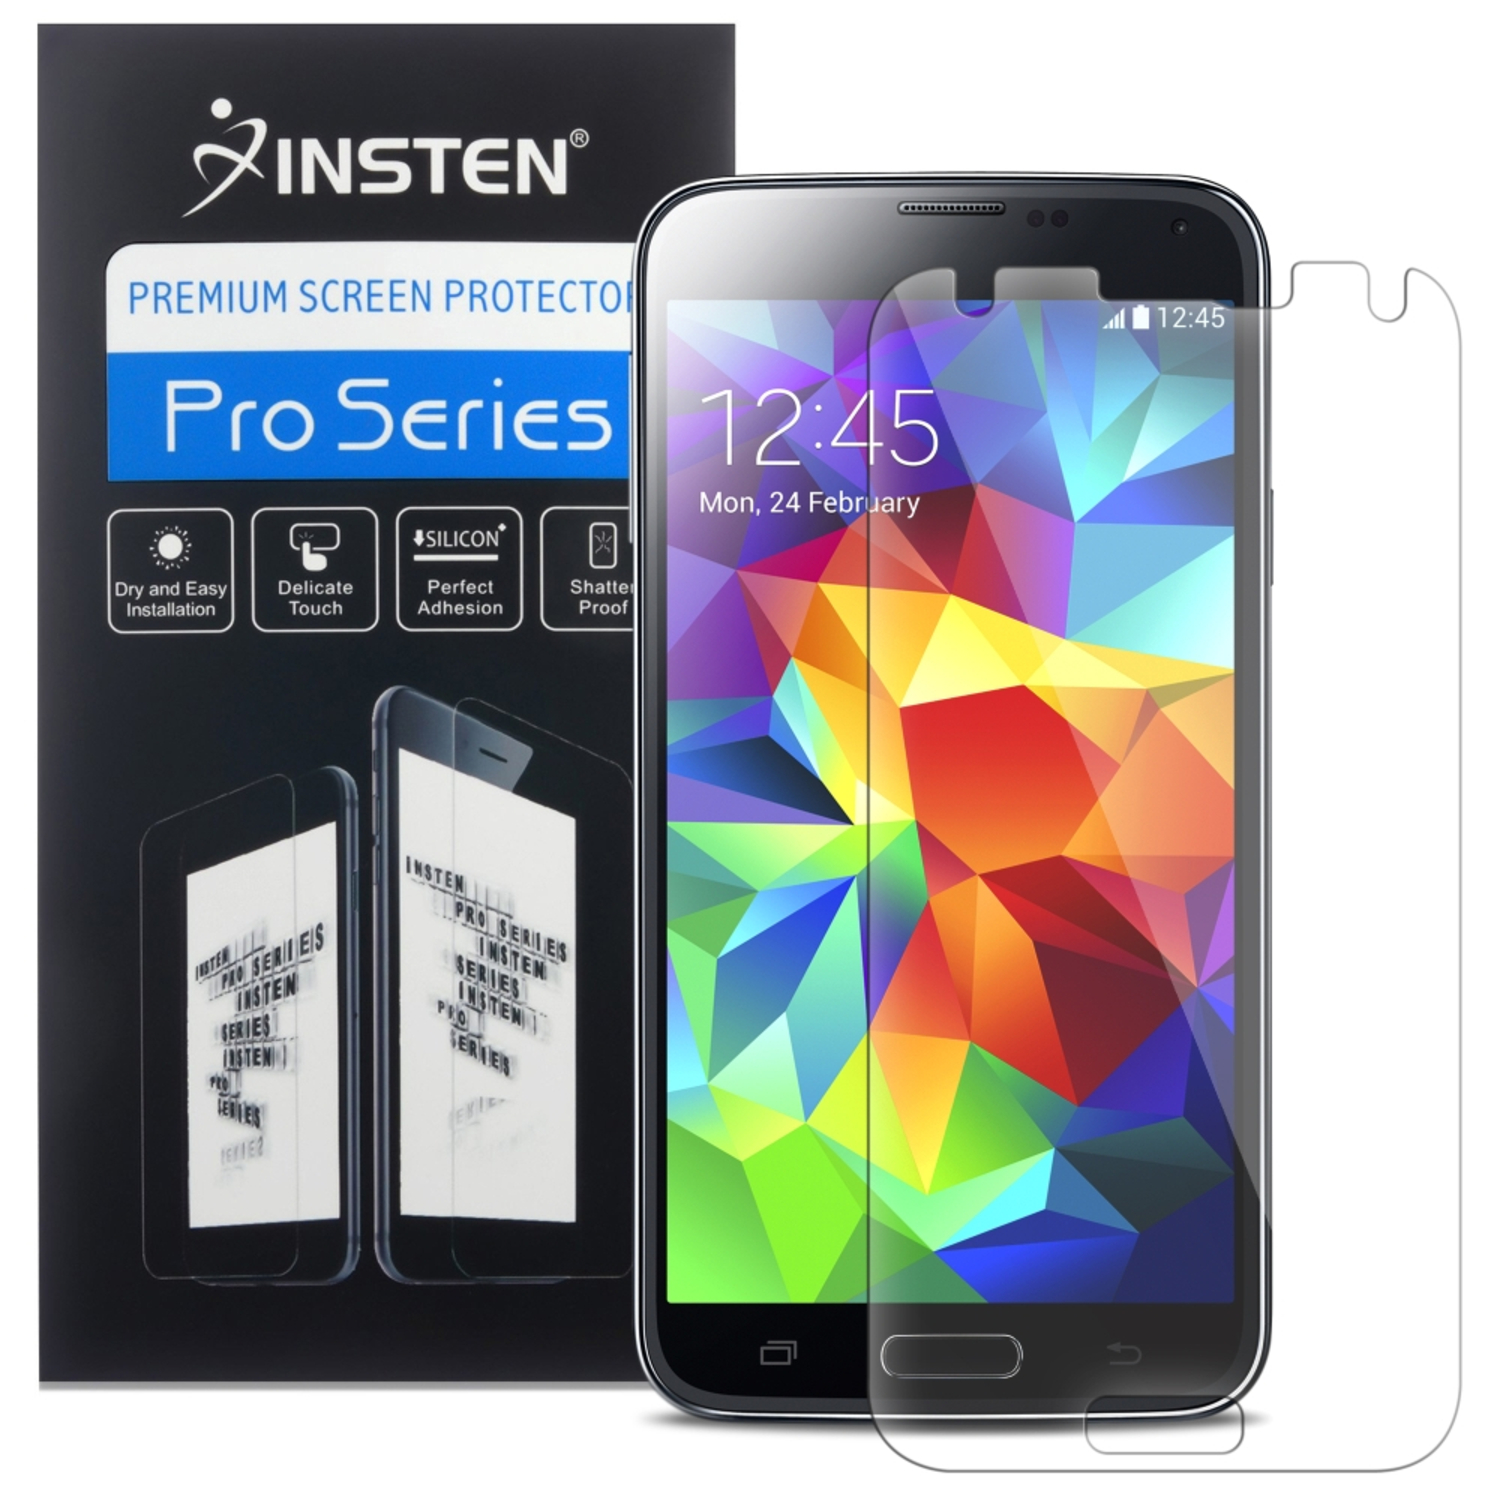 Insten 3x HD Clear LCD Screen Protector Film Guard Shield Cover For Samsung Galaxy S5 SV S V G900